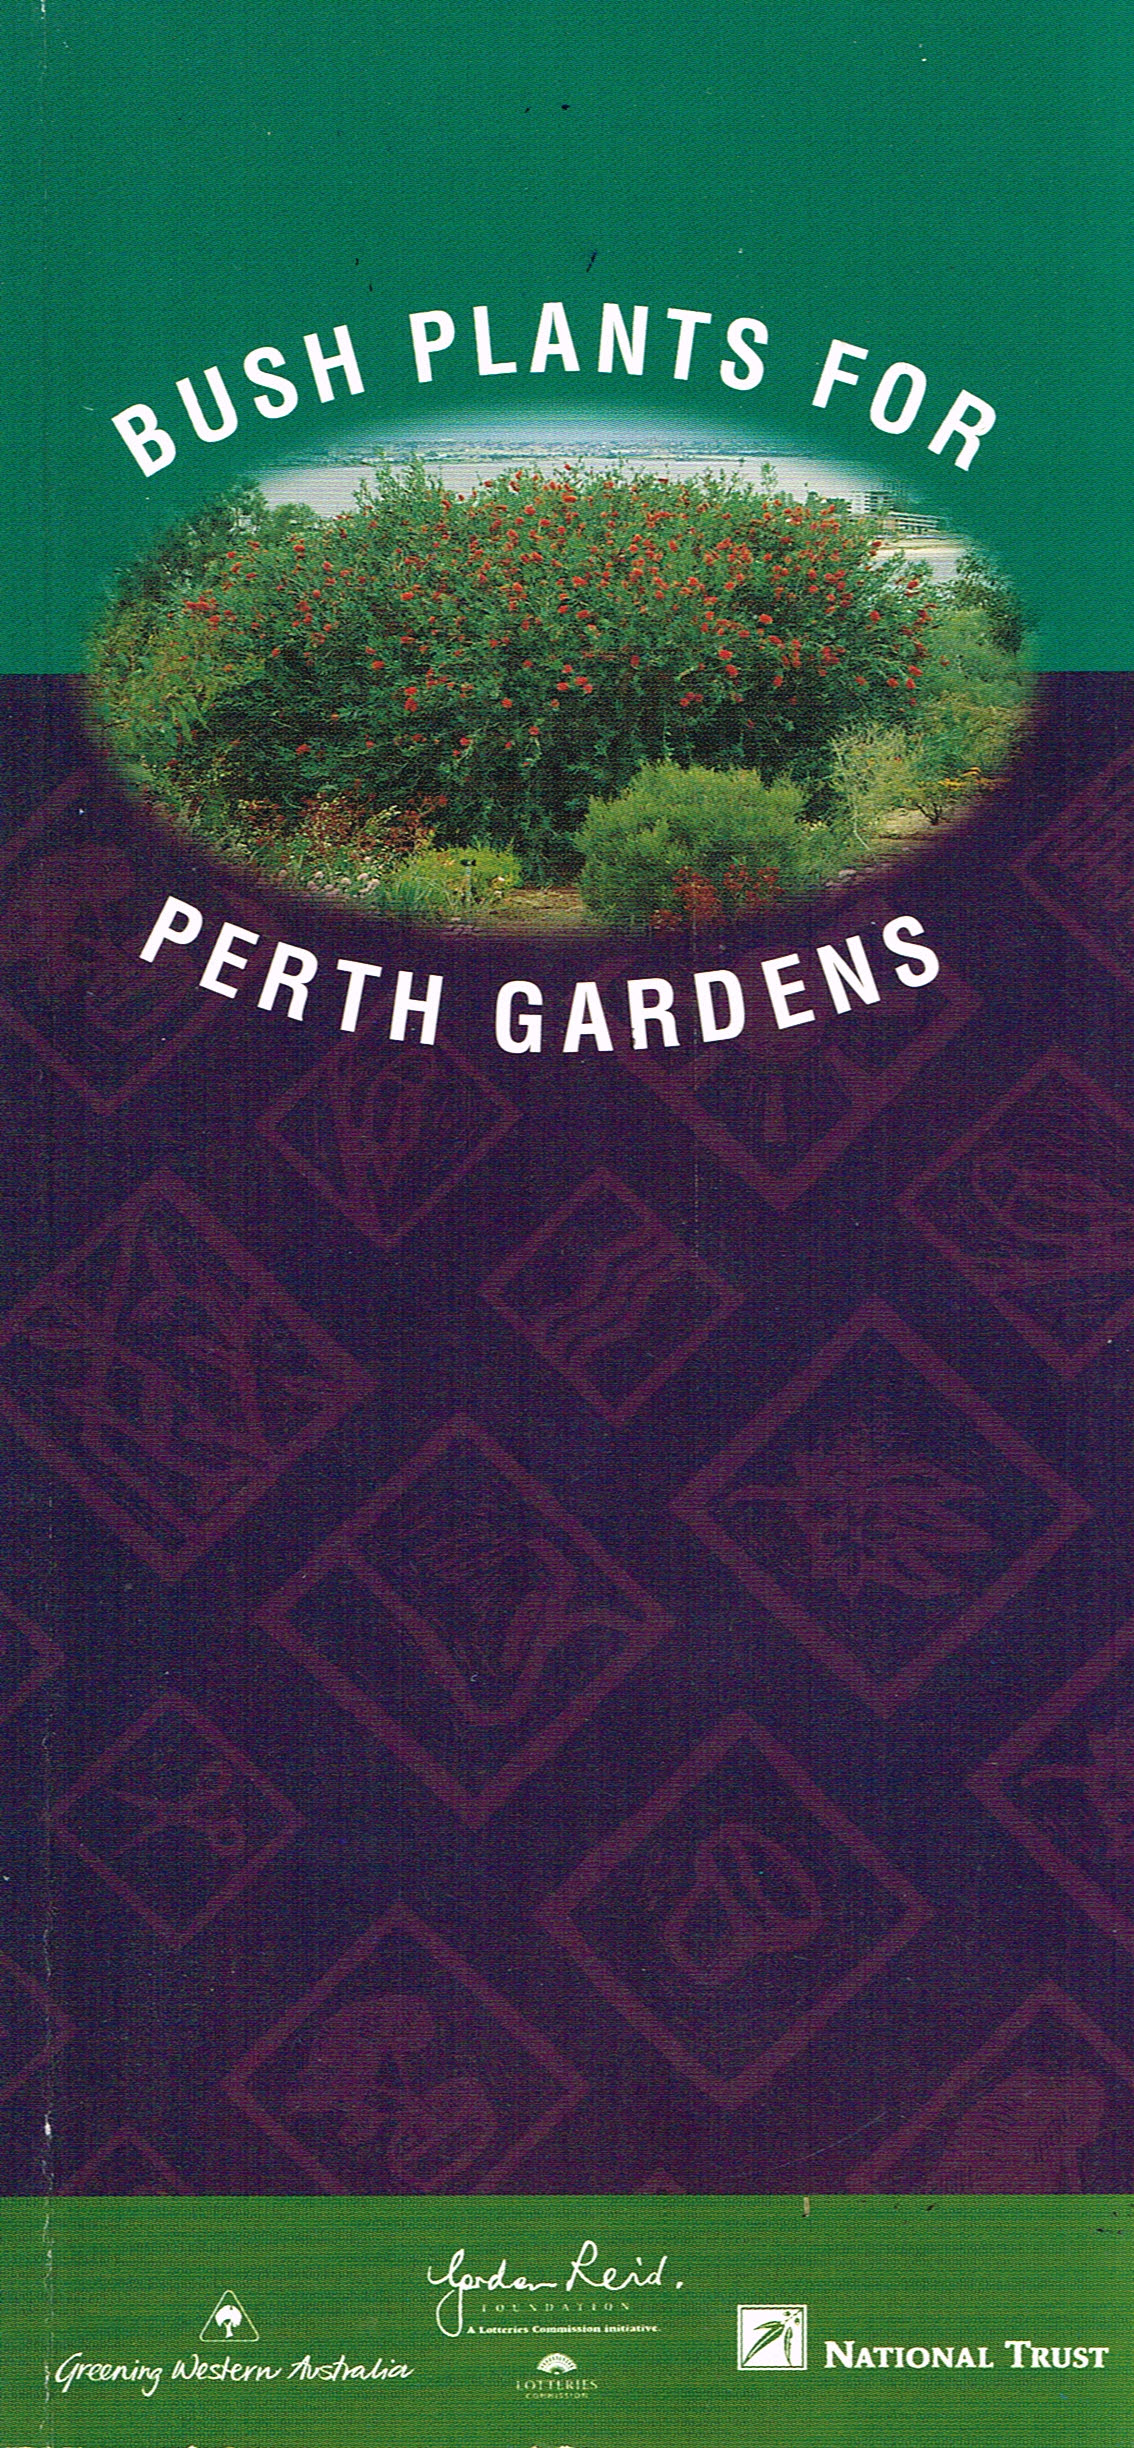 Bush Plants for Perth Gardens.jpg